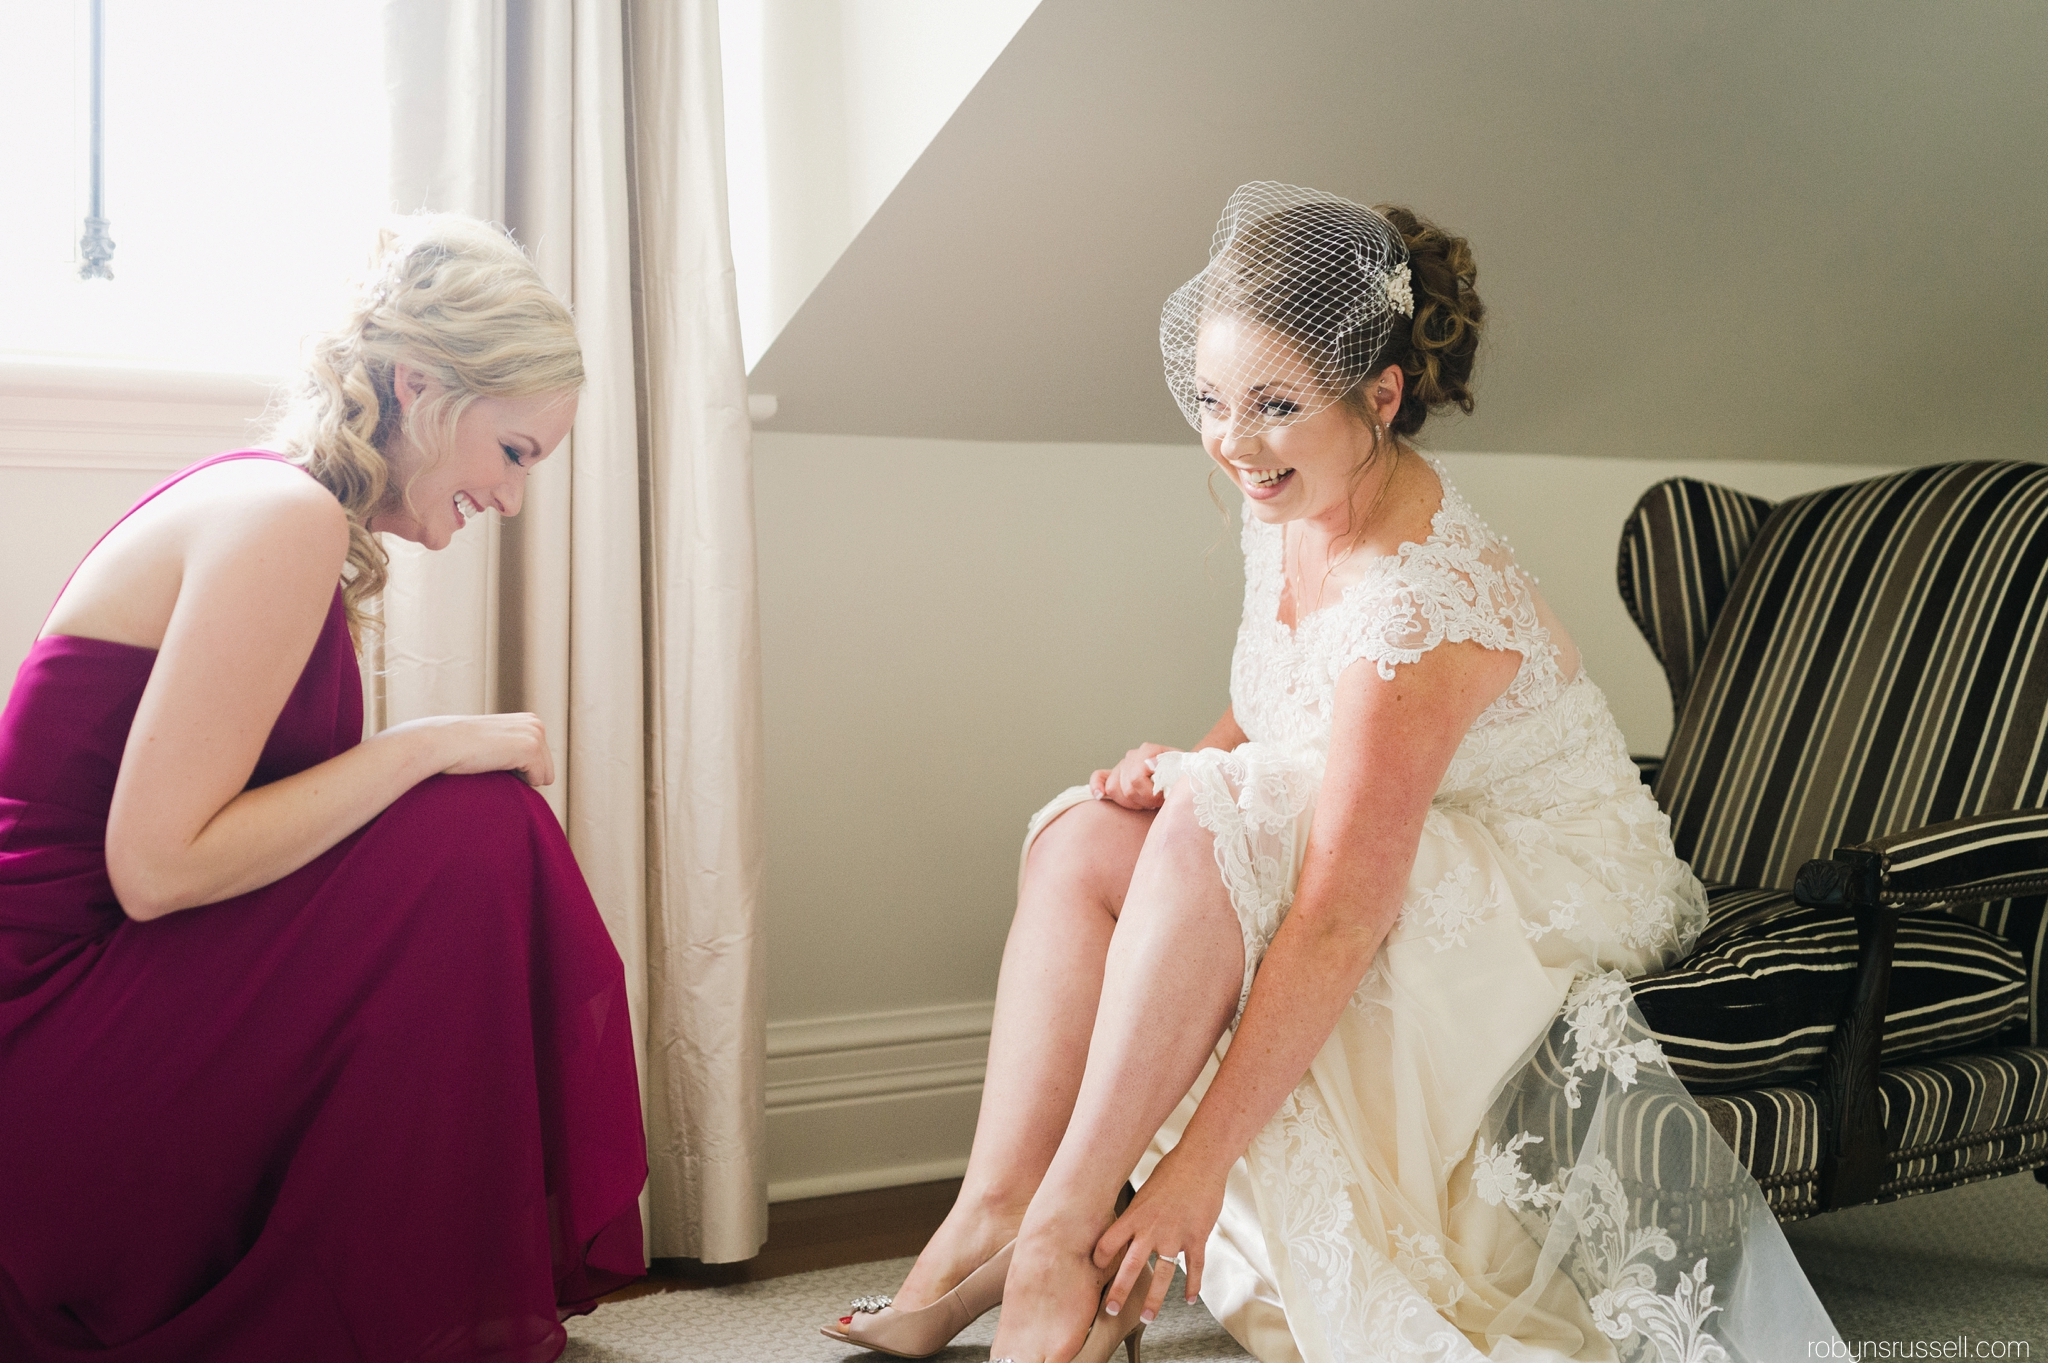 17-bride-getting-shoes-on-with-bridesmaid.jpg